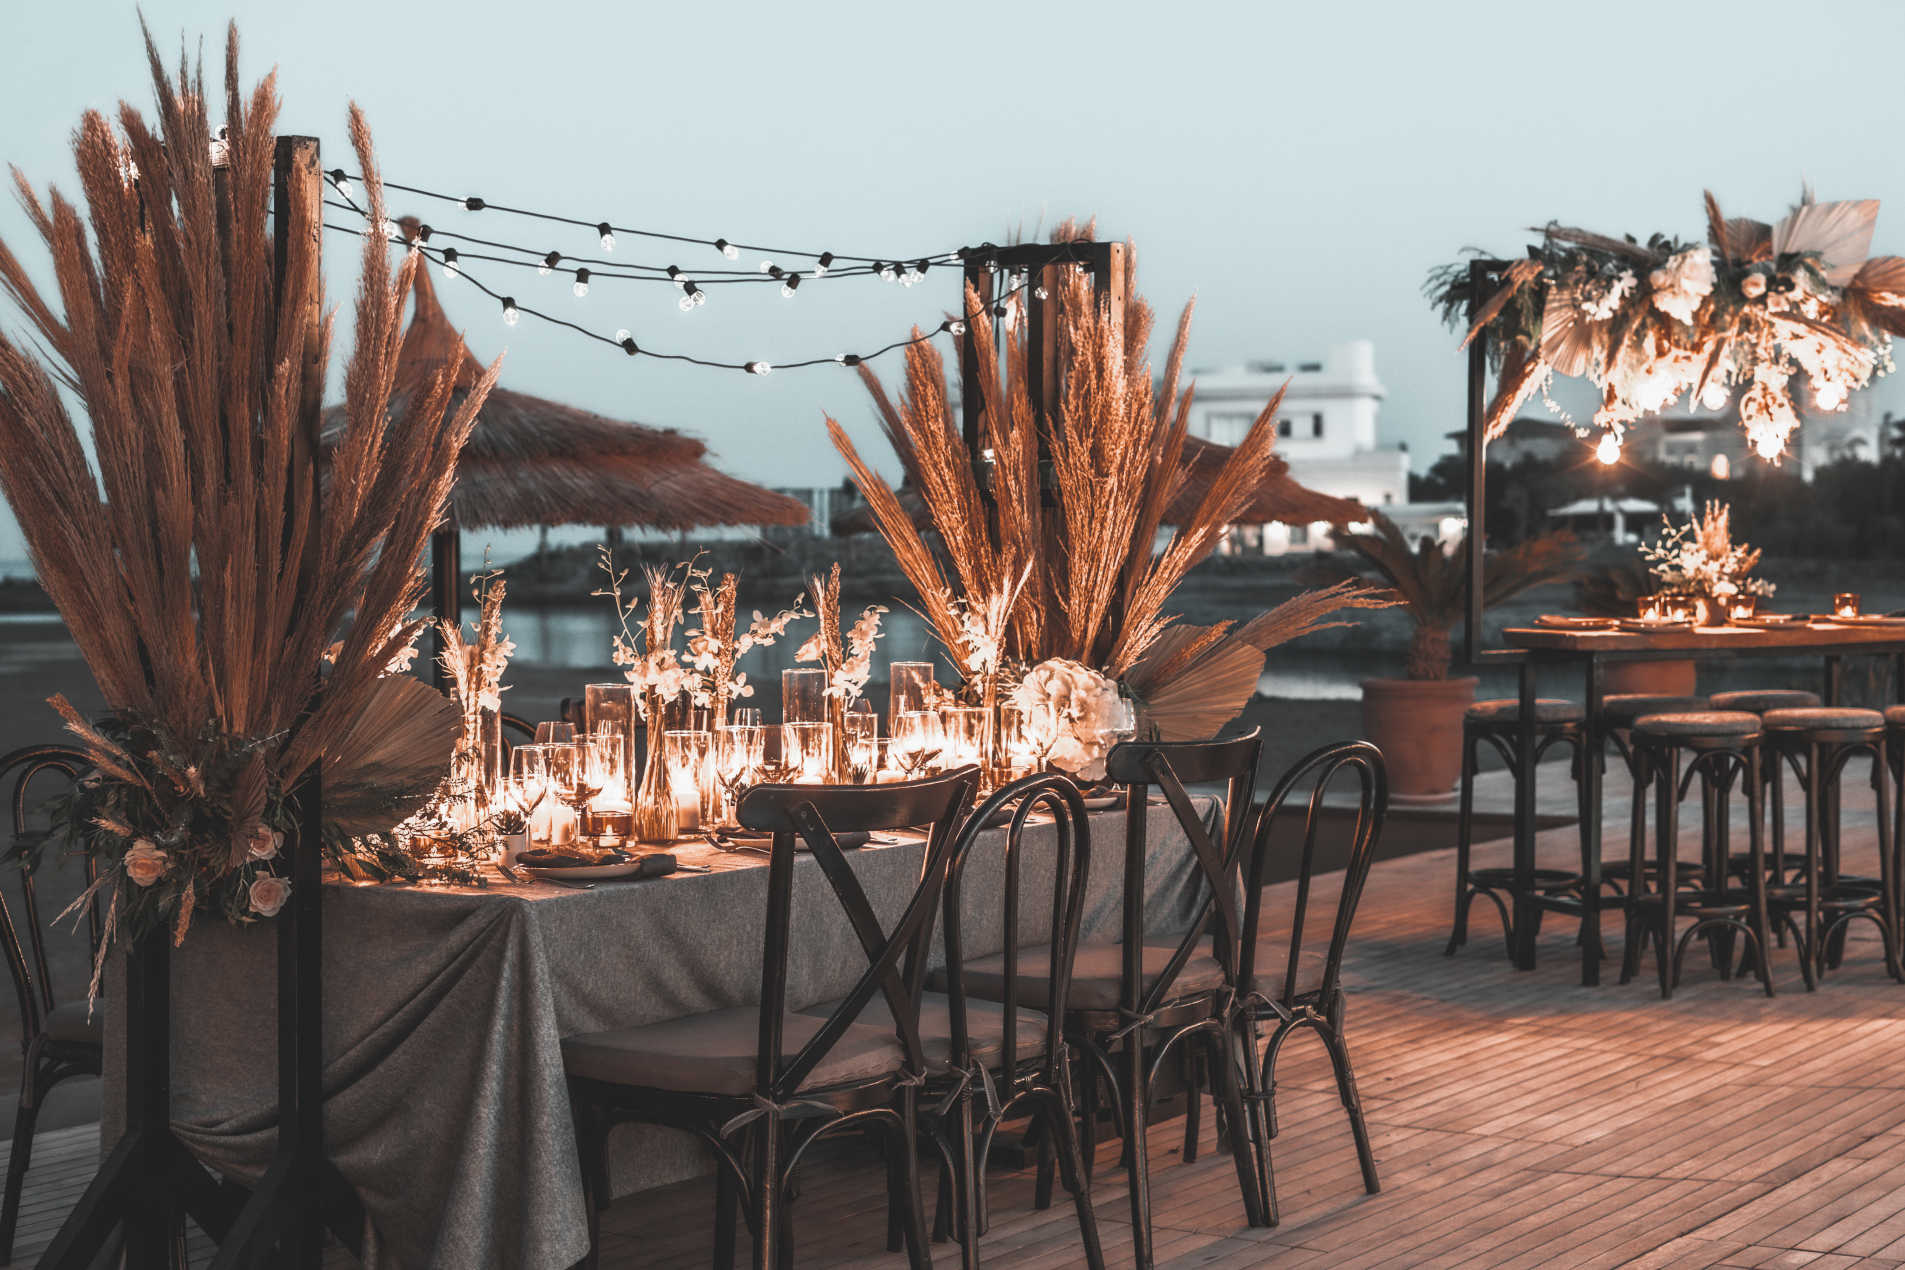 A wedding decor in Casa Cook El Gouna by the Red Sea Shores